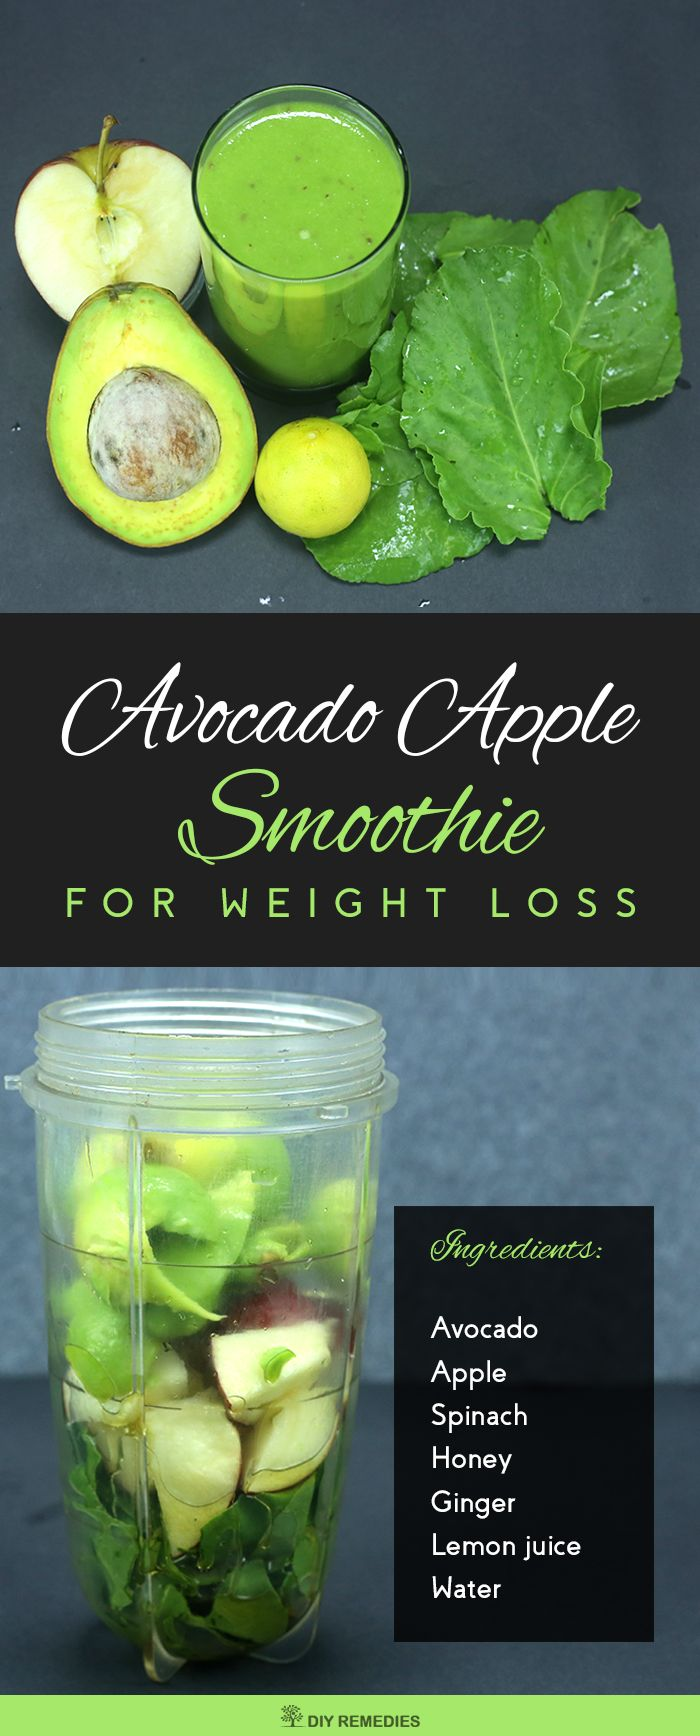 Avocado Apple Smoothie This is a healthy and nutritious smoothie that does not contain any dairy or sugar. This recipe can also be modified to suit a vegan and diabetic diet by leaving out the honey. #DIYRemedies #Smoothie